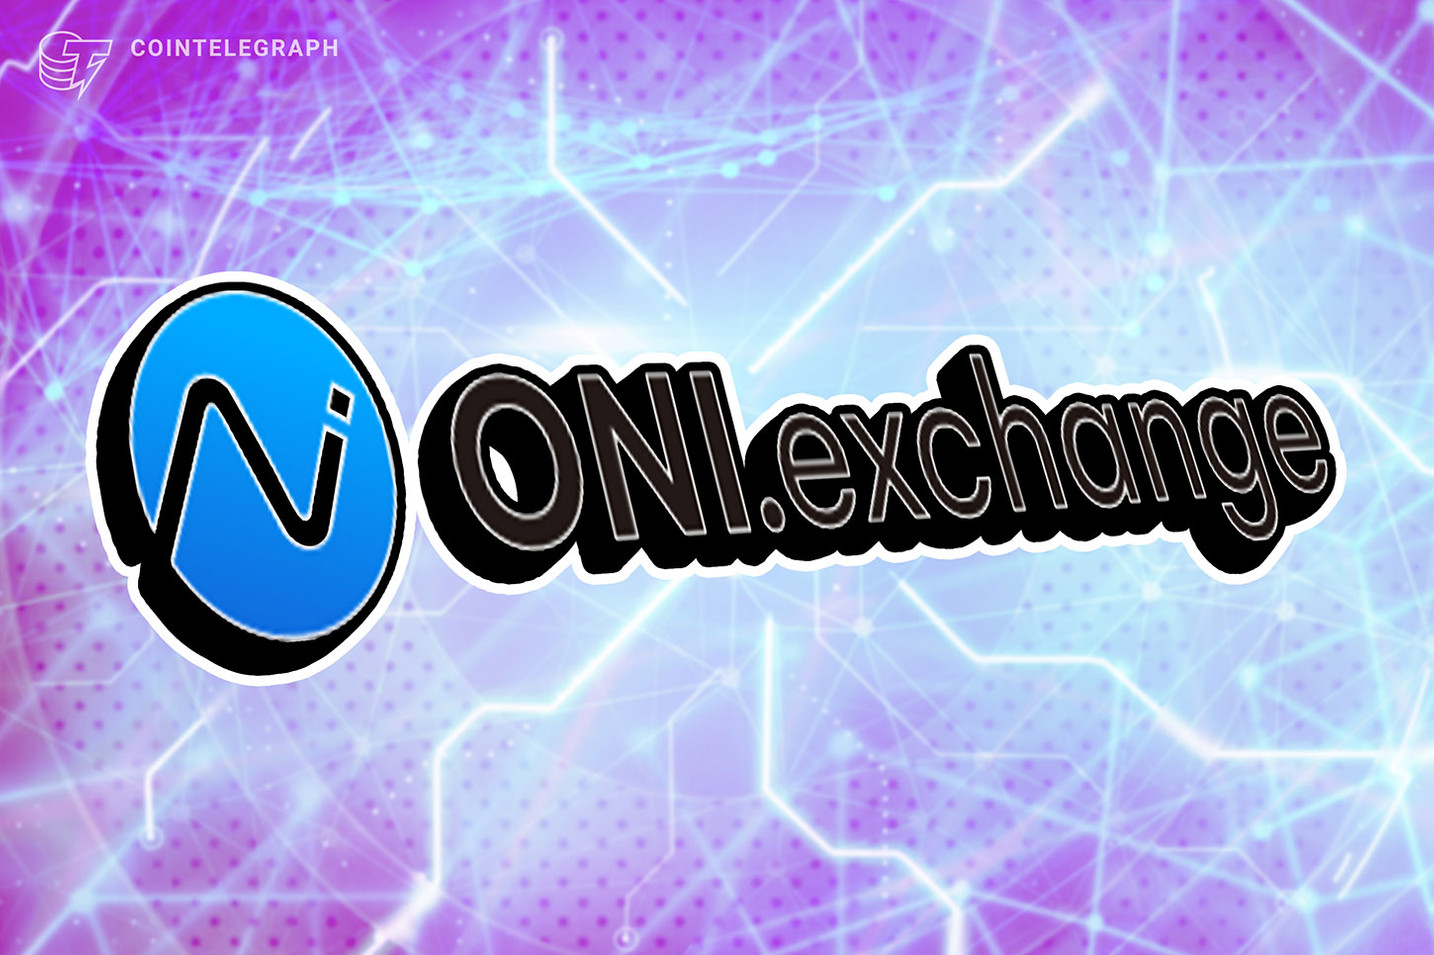 ONI.exchange is going to be one of the biggest DeFi launches this year